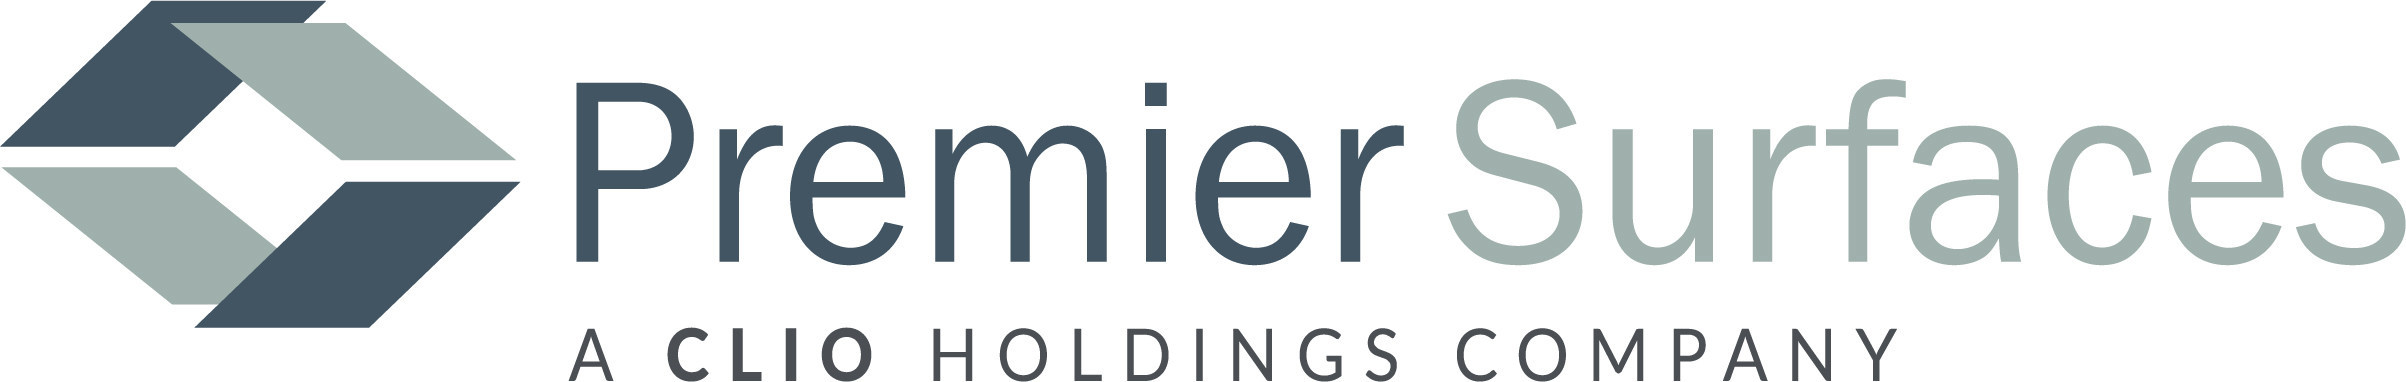 Premier Surfaces has partnered with four companies to expand and improve its offerings to customers nationwide.